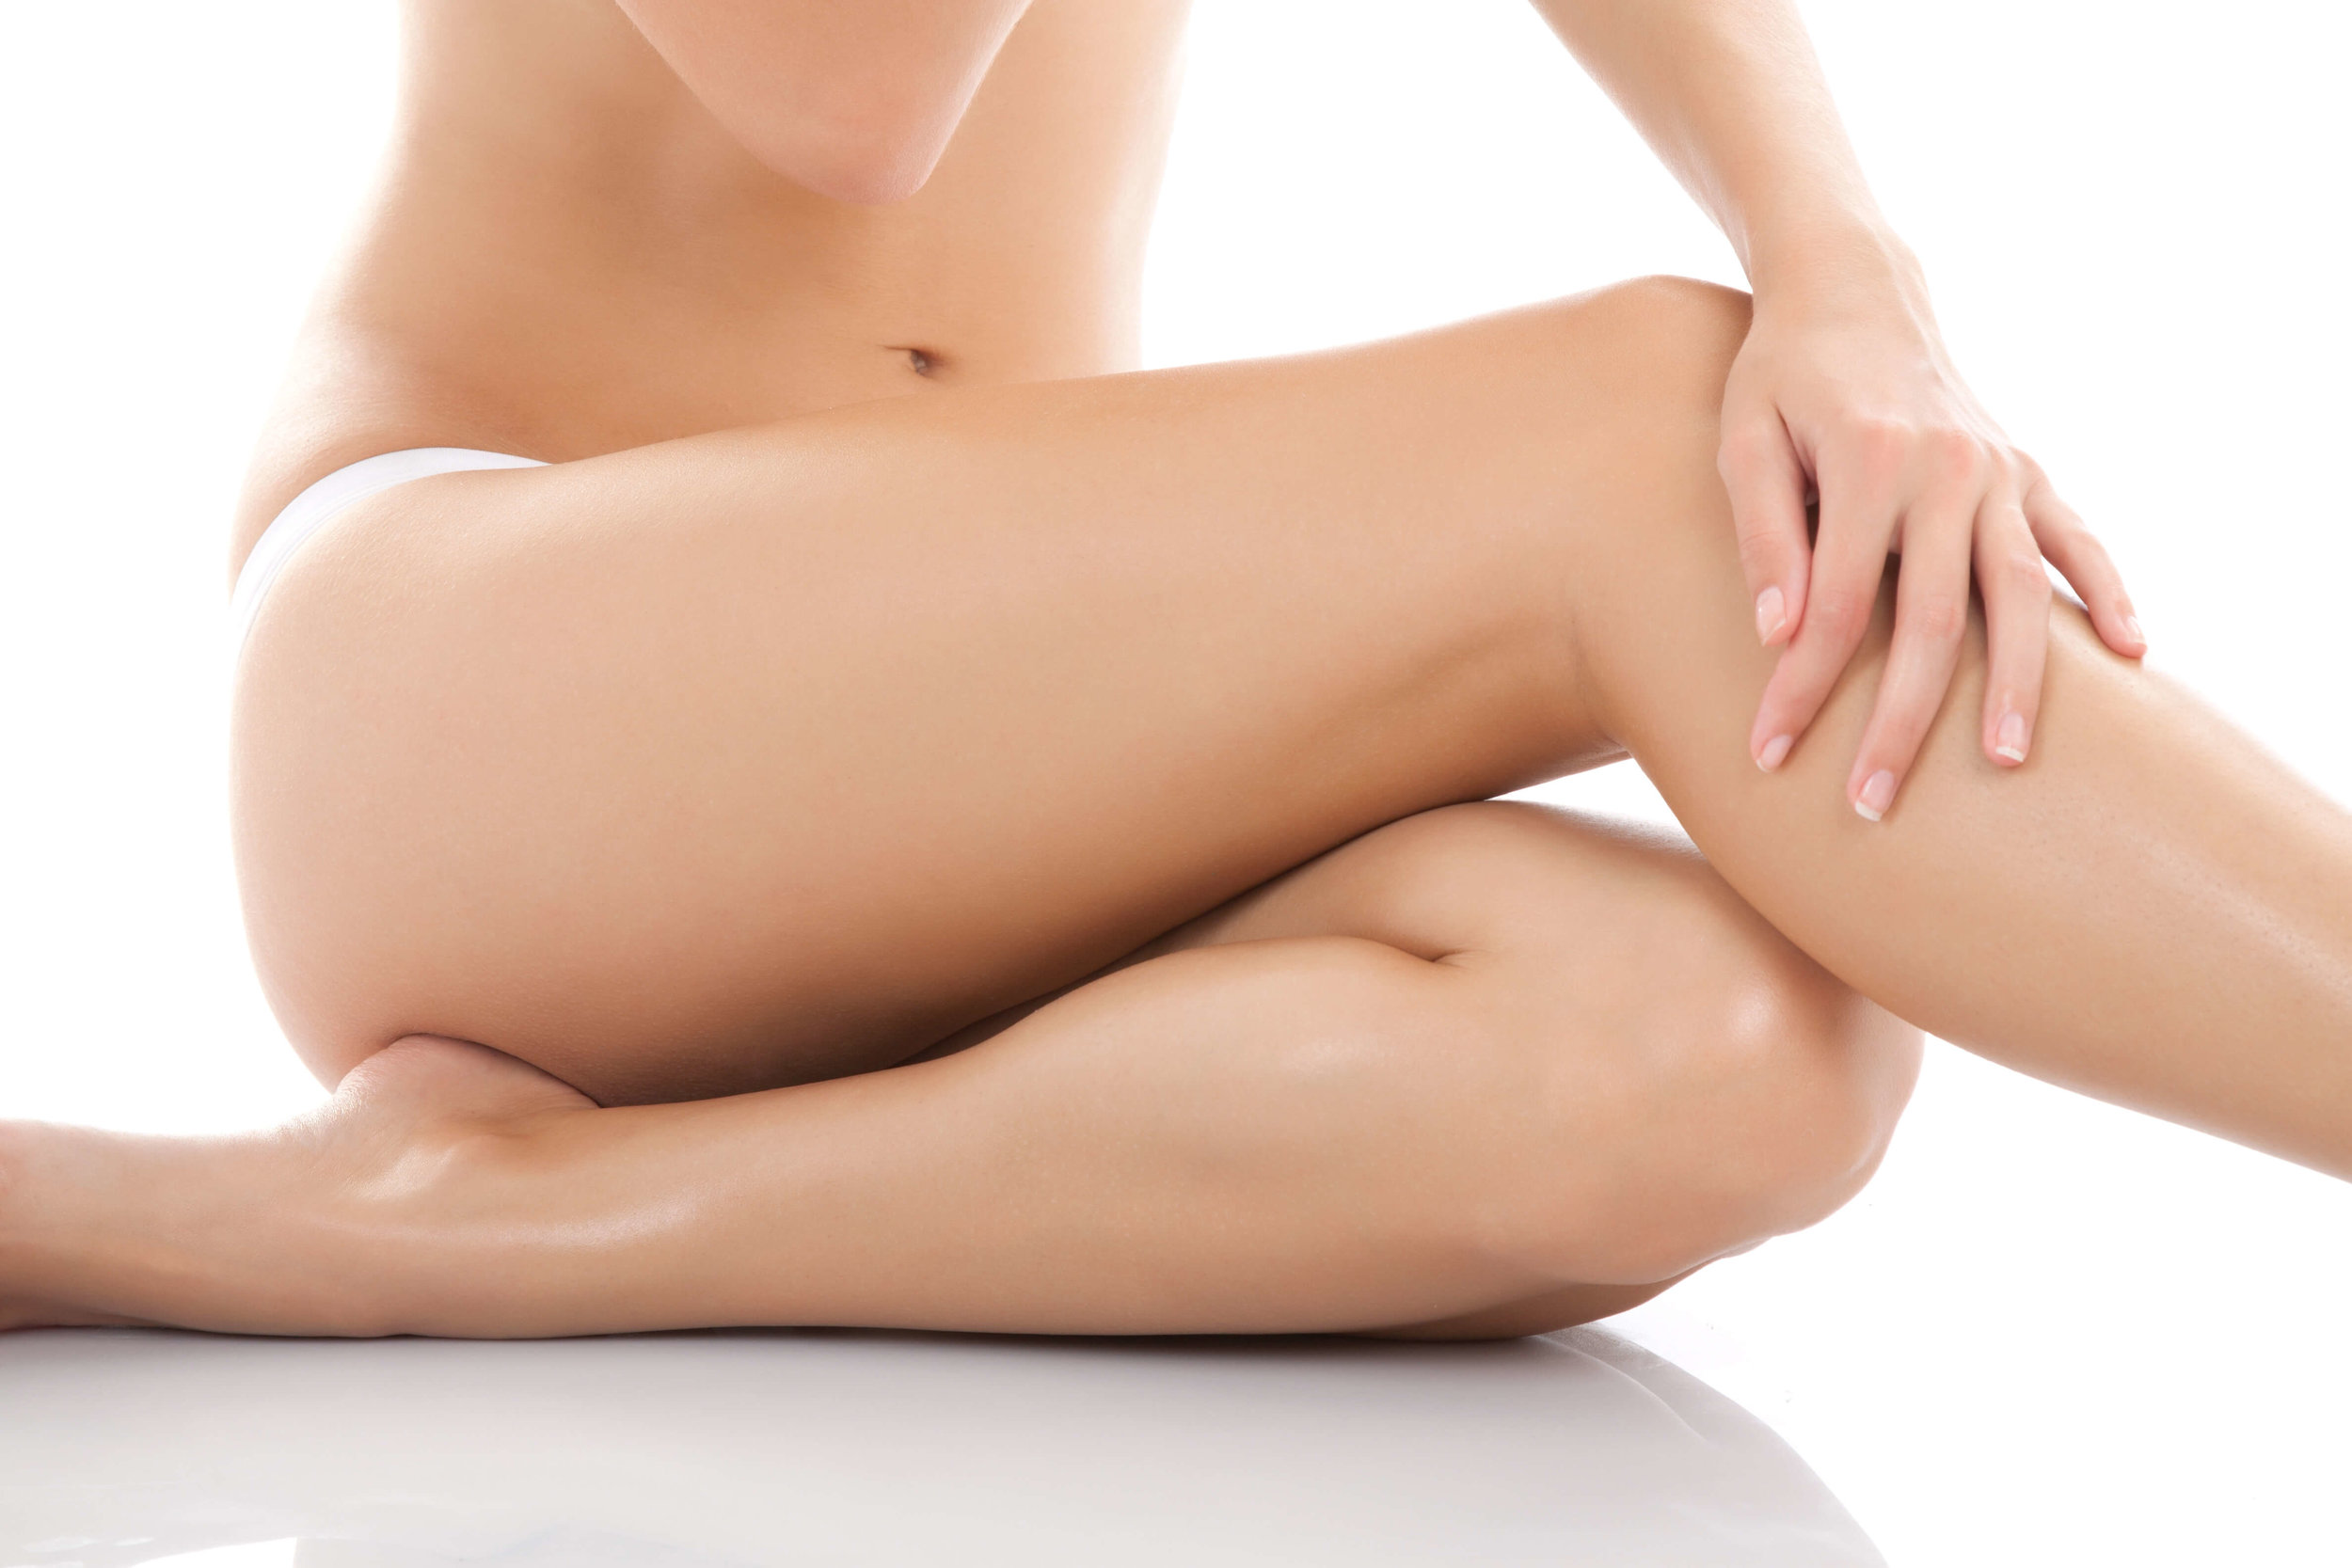 Body Wrap - The deep action of essential oils combined with gentle heat makes this an effective treatment to detoxify, regulate fluid balance and eliminate cellulite for slimming and body remodeling. The overall result is increased wellness, reduction of cellulite and dramatic inch loss.$115